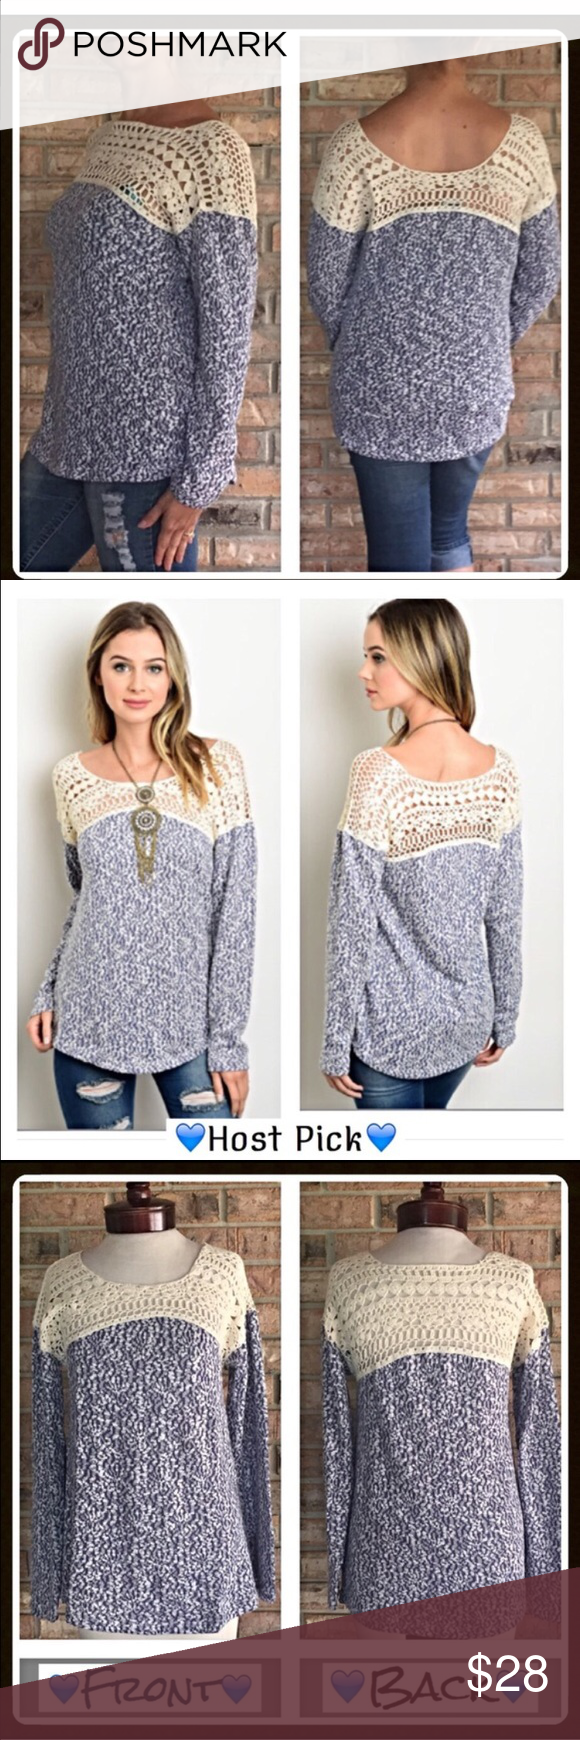 Beautiful Crochet Lace Indigo Sweater Top S M How cute is this ...